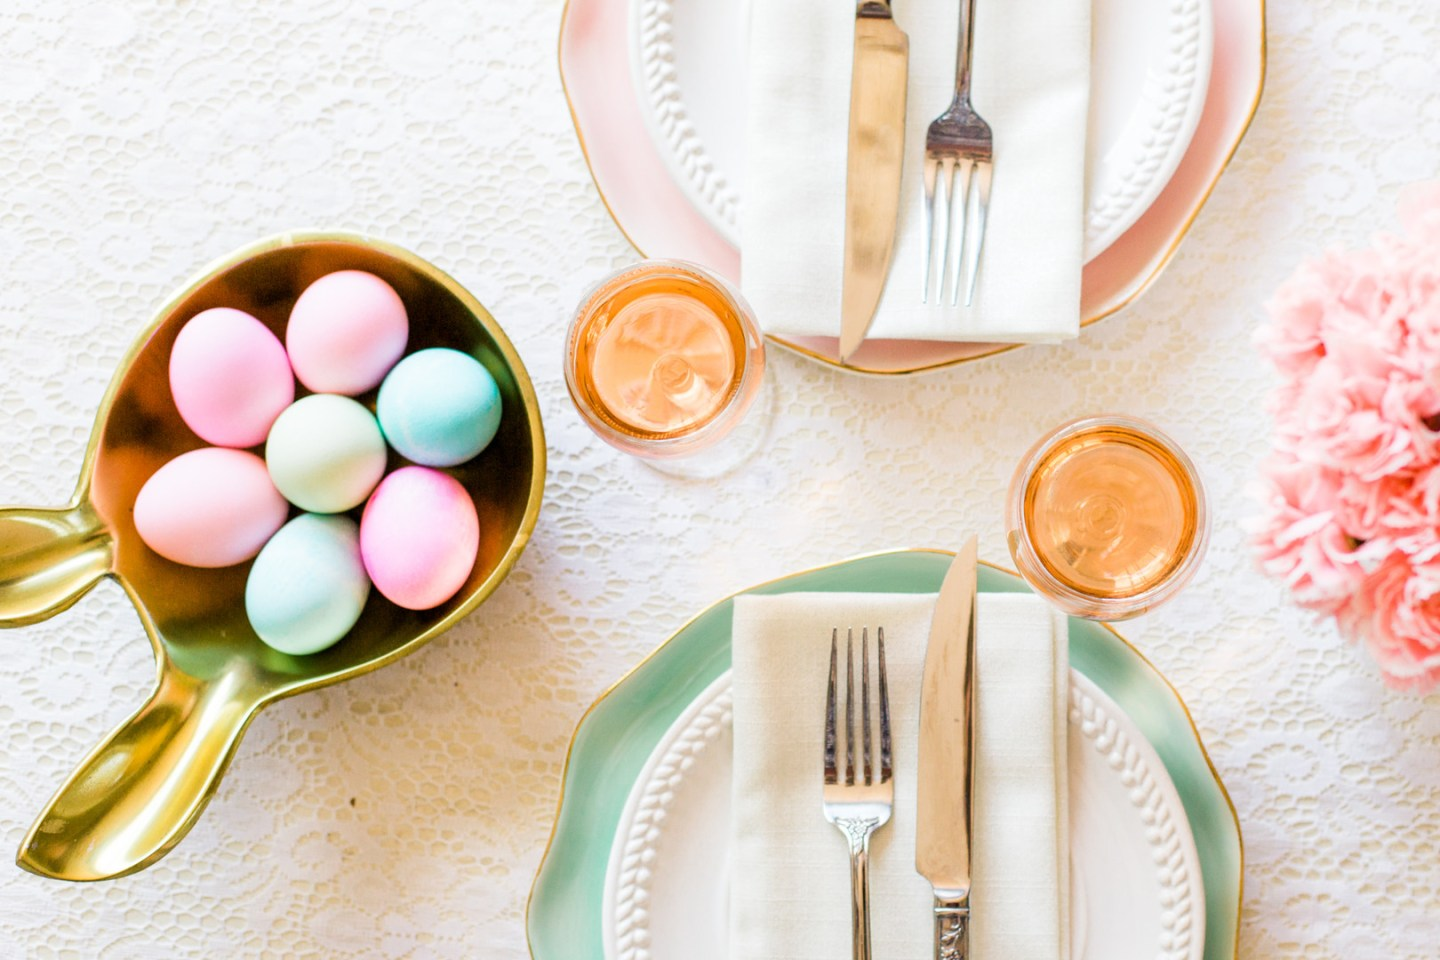 Staal_KristinaStaalPhotography_KristinaStaalPhotographyEasterTablescape20164_big-1440x960 Easy Entertaining: Easter Brunch Inspiration for Two